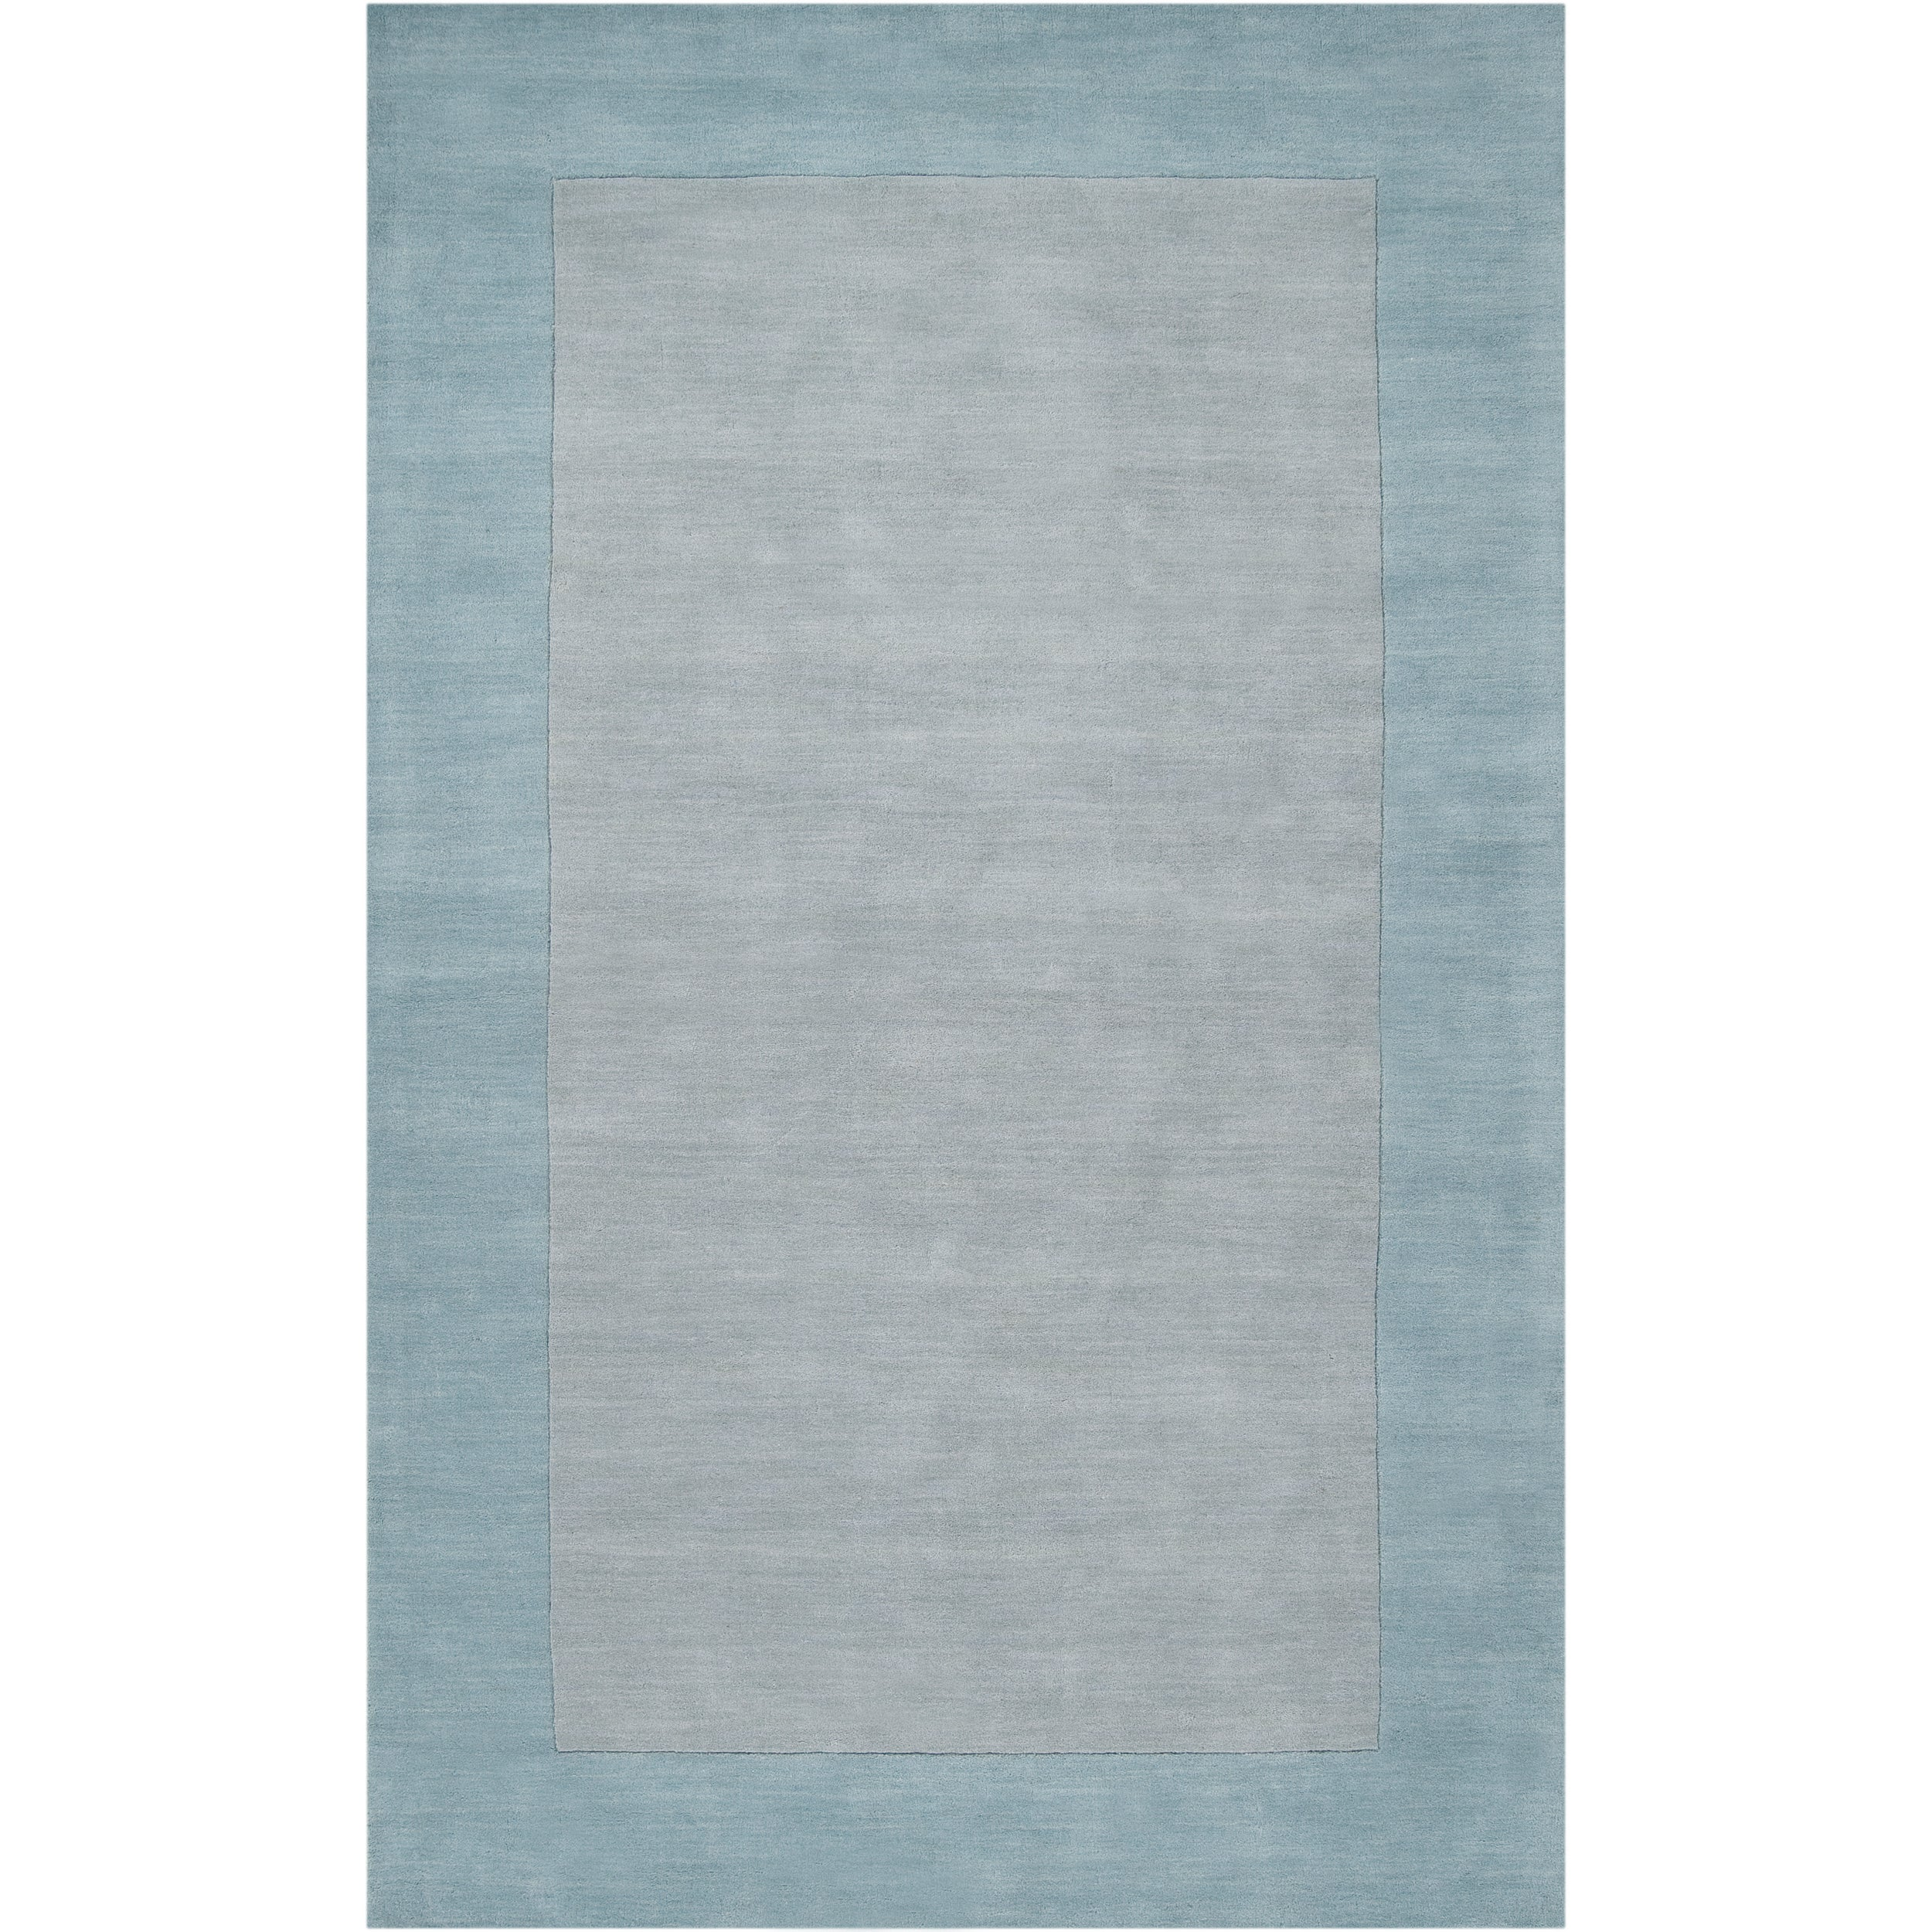 Hand-crafted Light Blue Tone-On-Tone Bordered Decido Wool Area Rug (9' x 13')